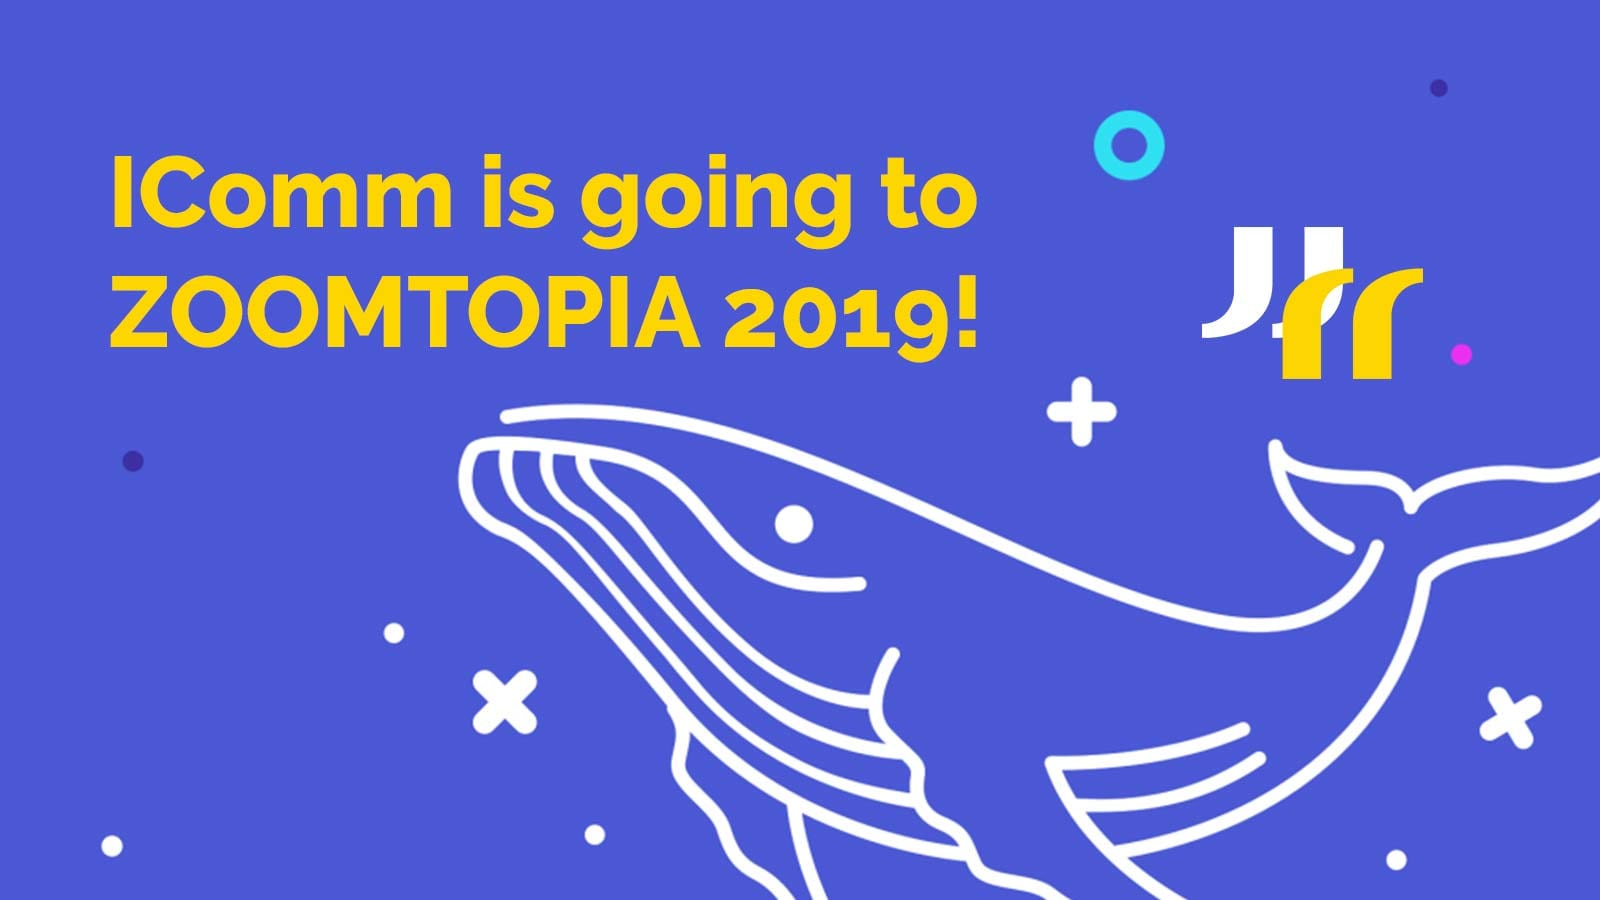 "purple banner with outline of cartoon humpback whale, IComm logo mark, and text ""IComm is going to ZOOMTOPIA 2019!"""